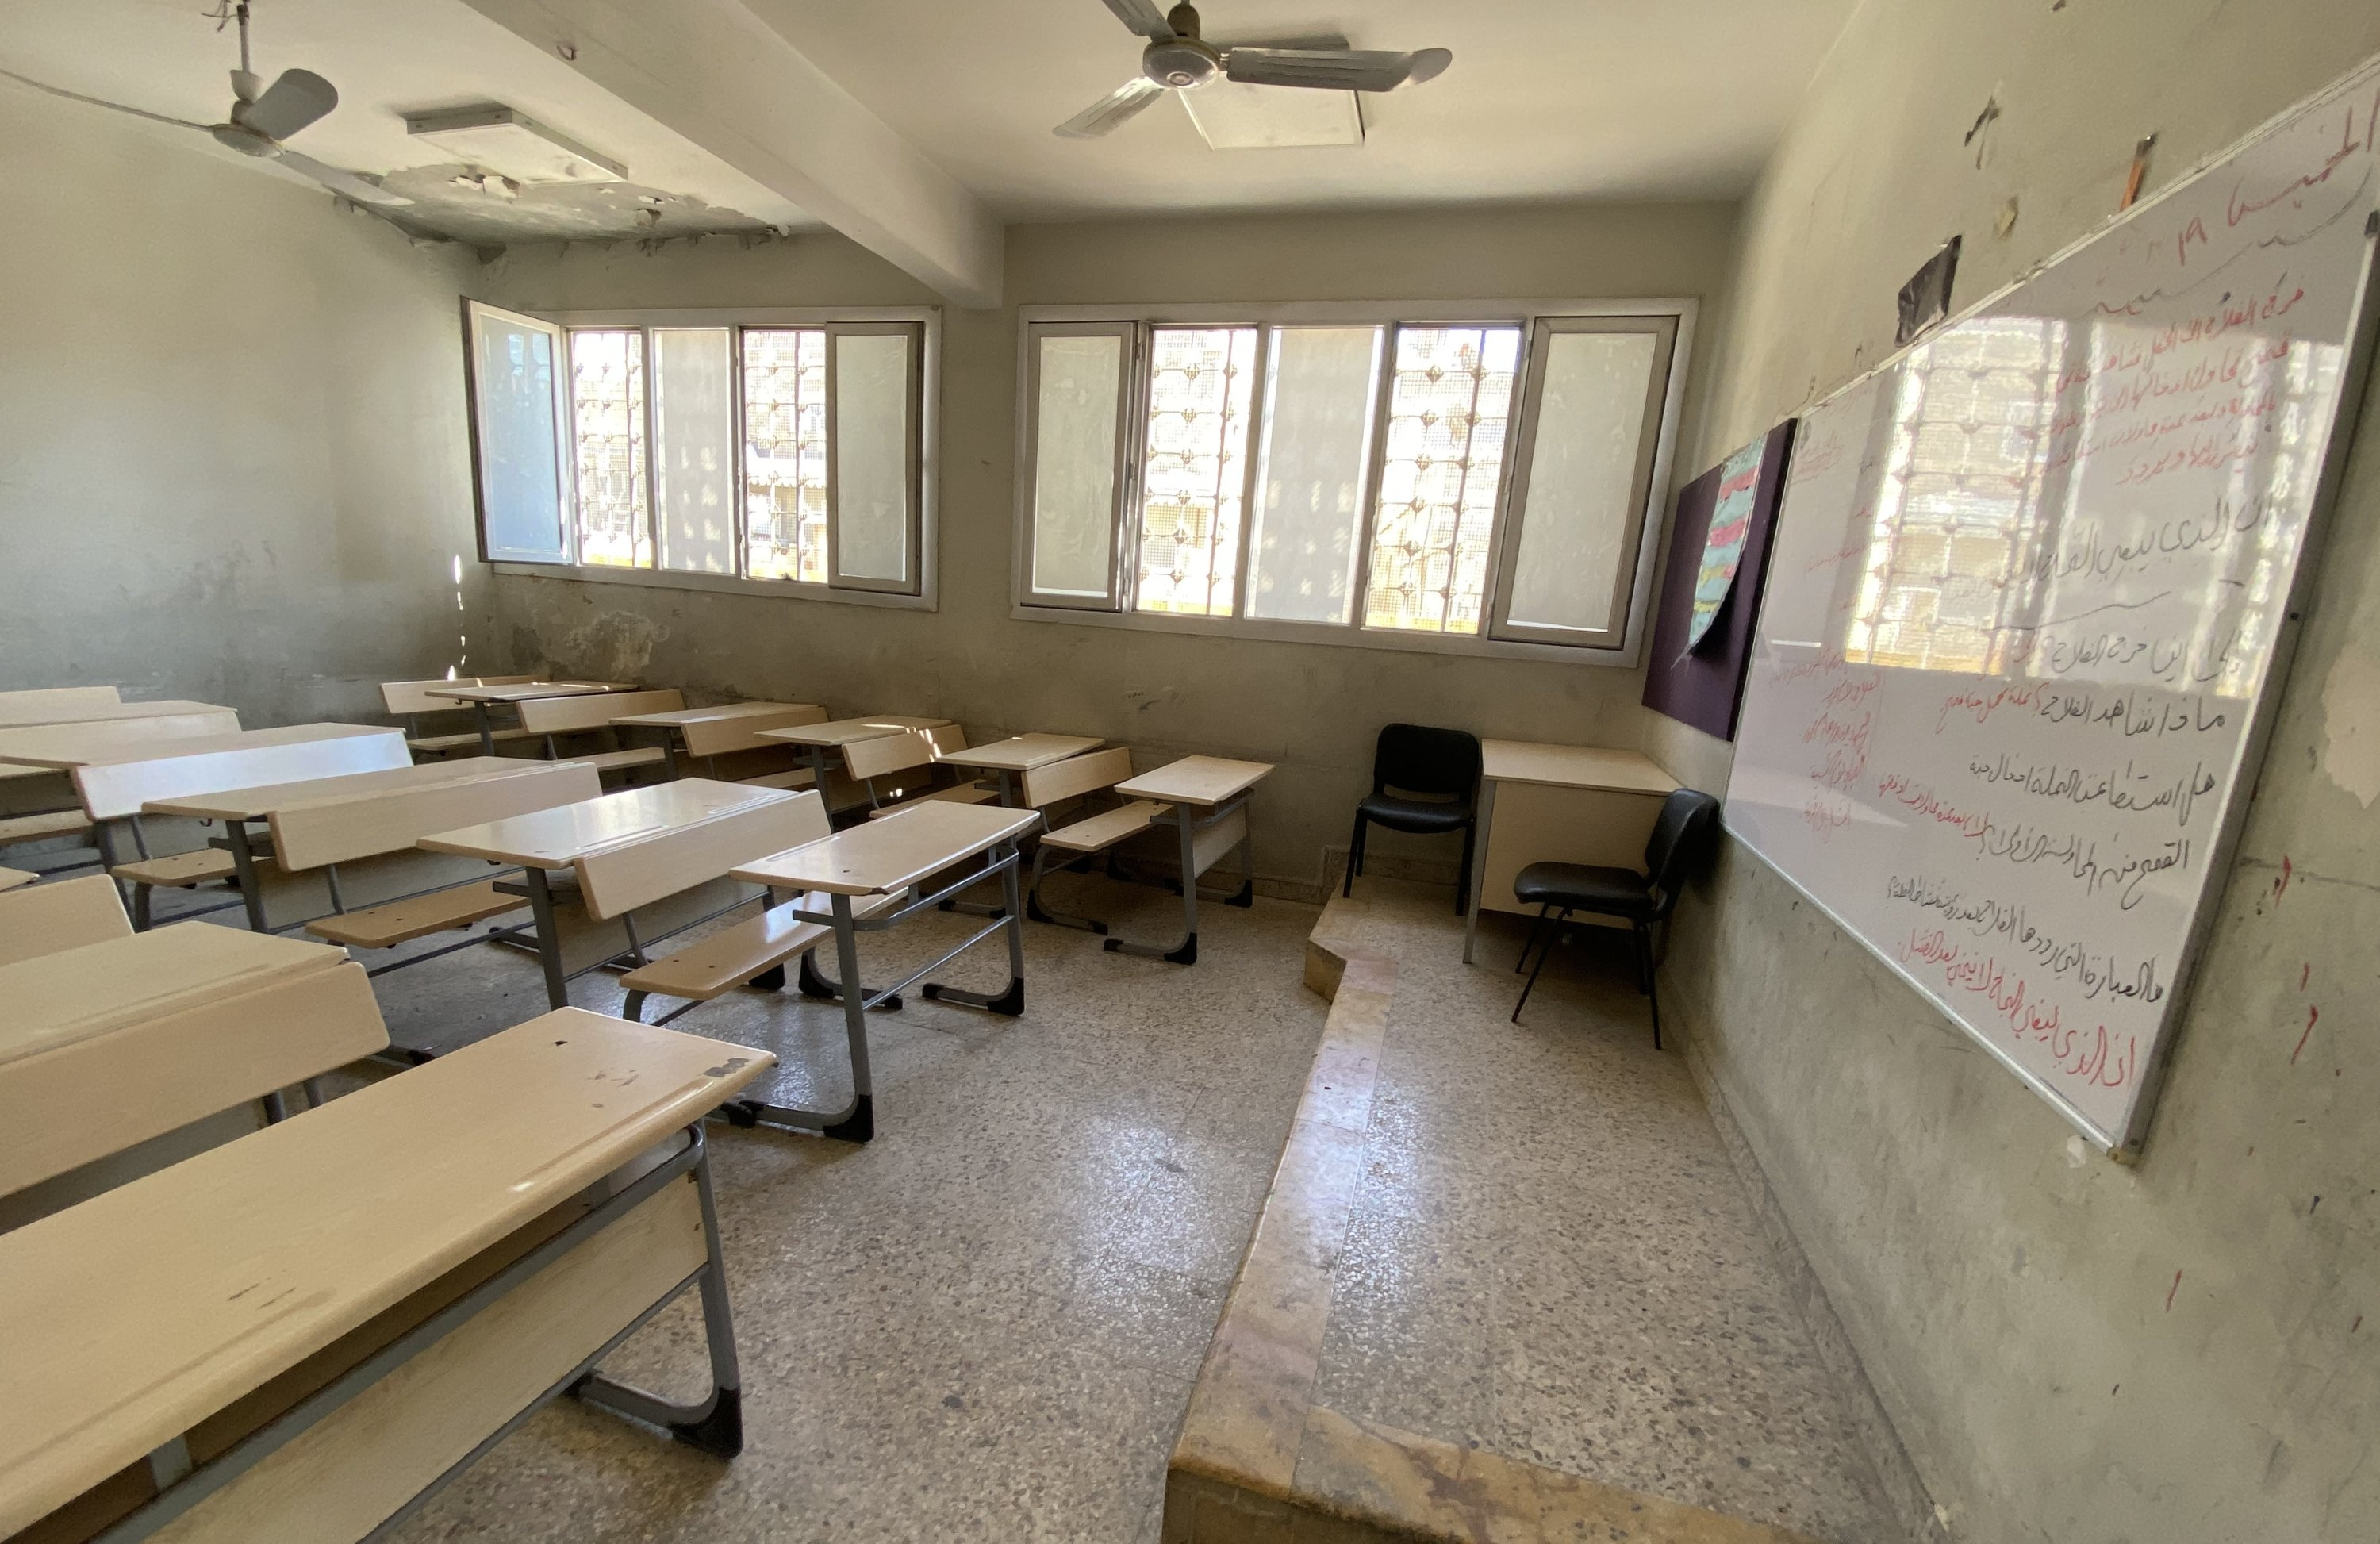 A classroom in a school reconstructed with the support of Turkey is seen in Azaz, northern Syria, Aug. 23, 2021. (AA Photo)